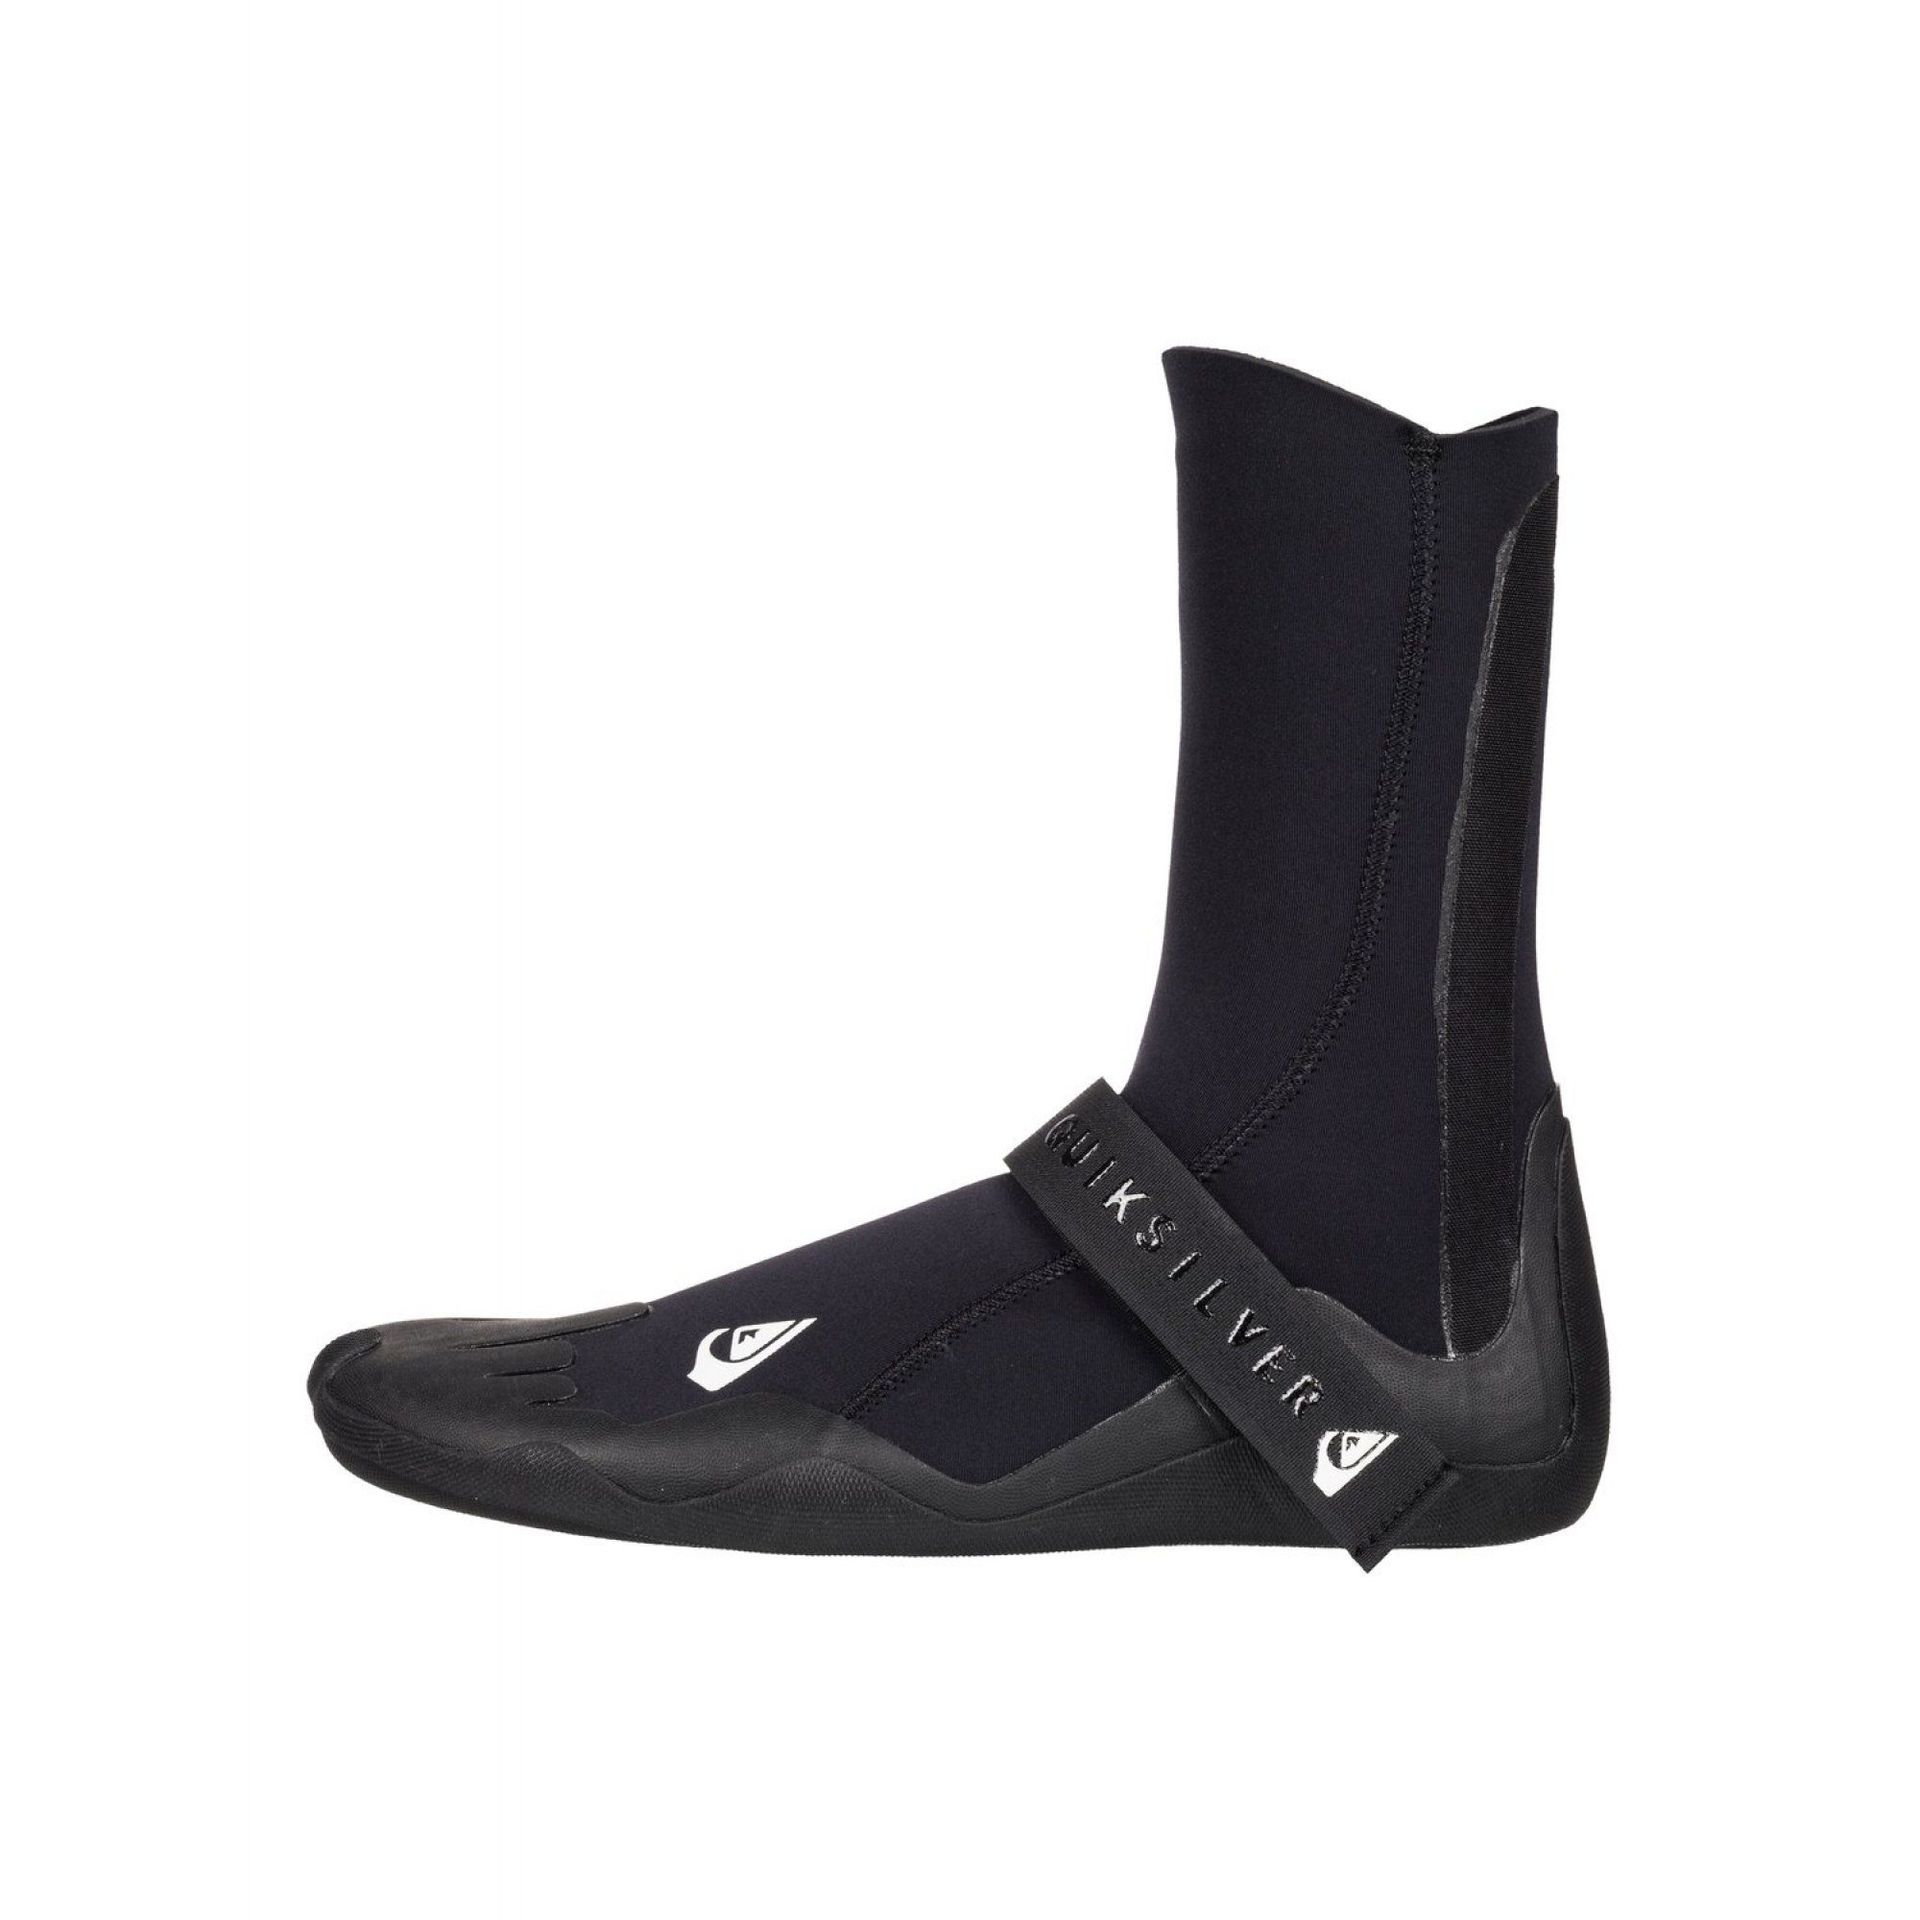 BUTY NEOPRENOWE QUIKSILVER SYNCRO 3MM  ROUND TOE SURF